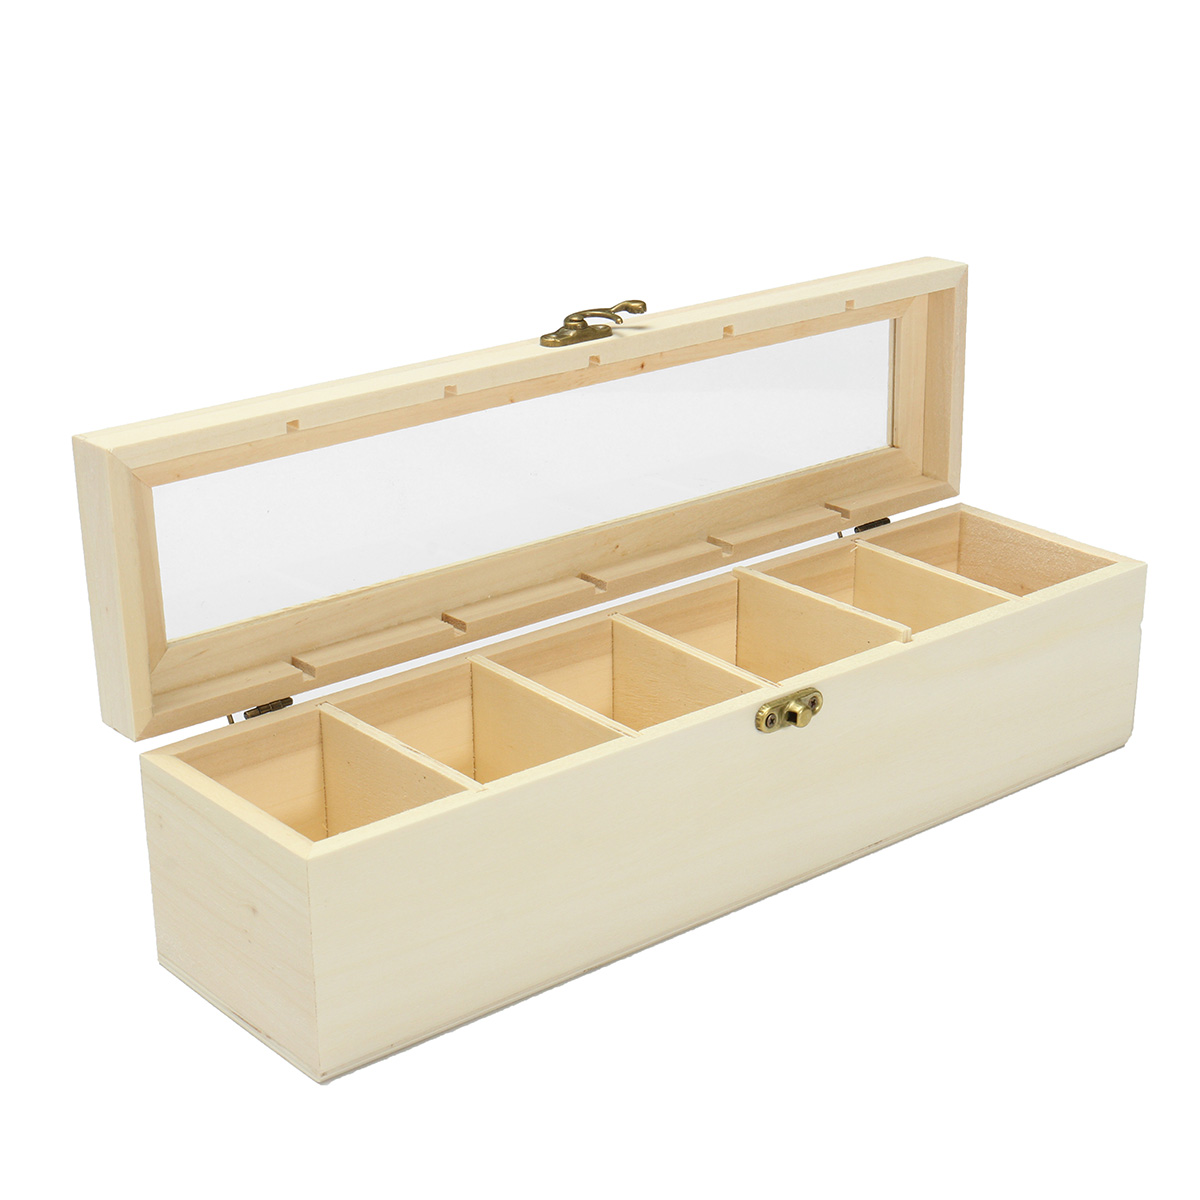 Wooden Tea Bag Box Five/Six Compartments Jewelry Accessories Storage Glass Top Vintage Wood Craft Store Box Case Container-in Storage Boxes u0026 Bins from Home ...  sc 1 st  AliExpress.com & Wooden Tea Bag Box Five/Six Compartments Jewelry Accessories ... Aboutintivar.Com